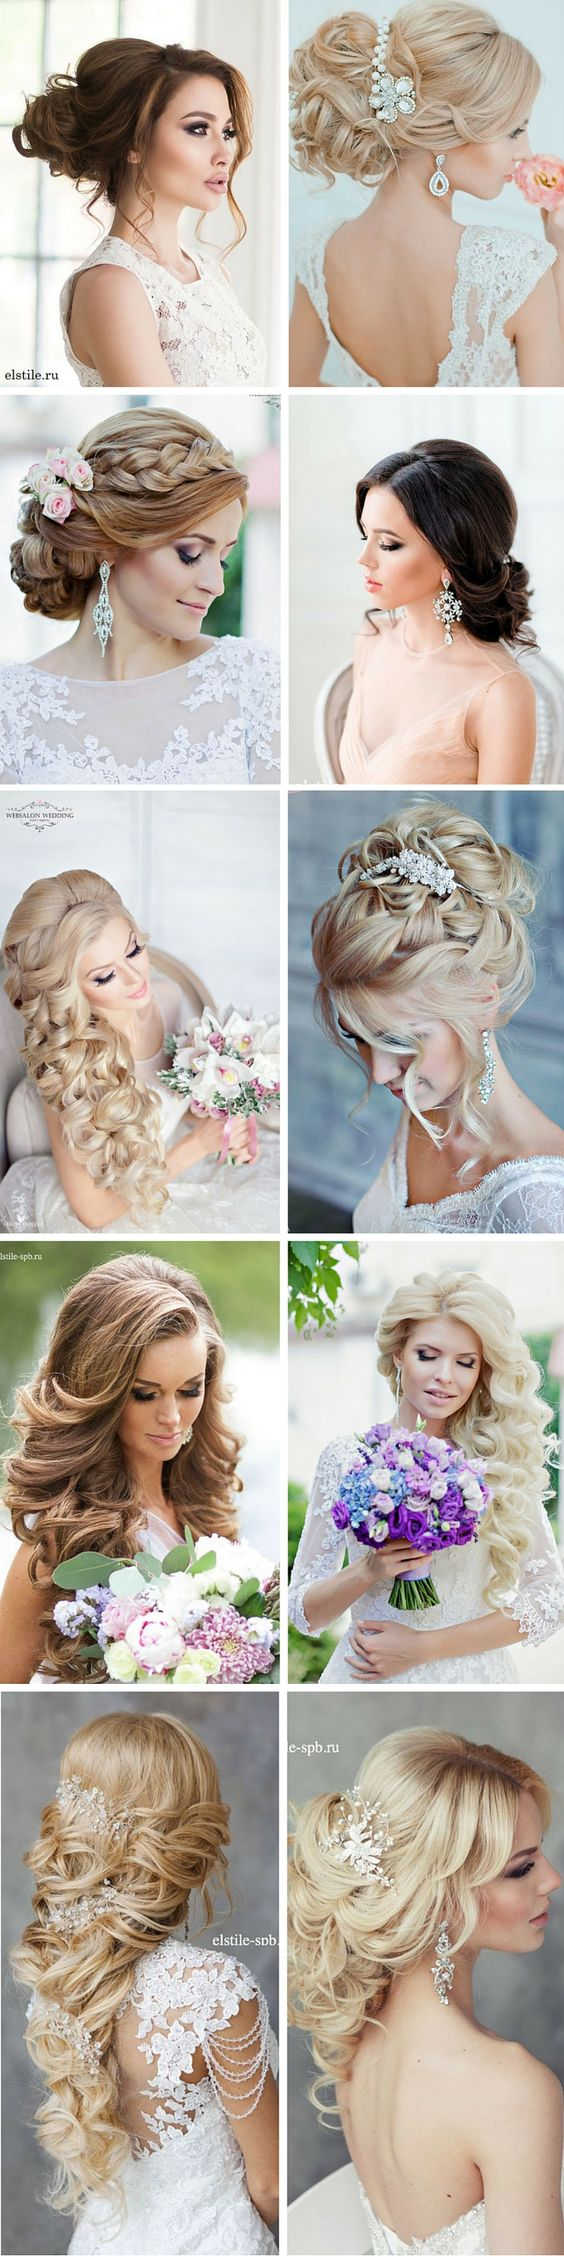 Hairstyles-Gorgeous Wedding Forٍ Chic Bride On Class World 2